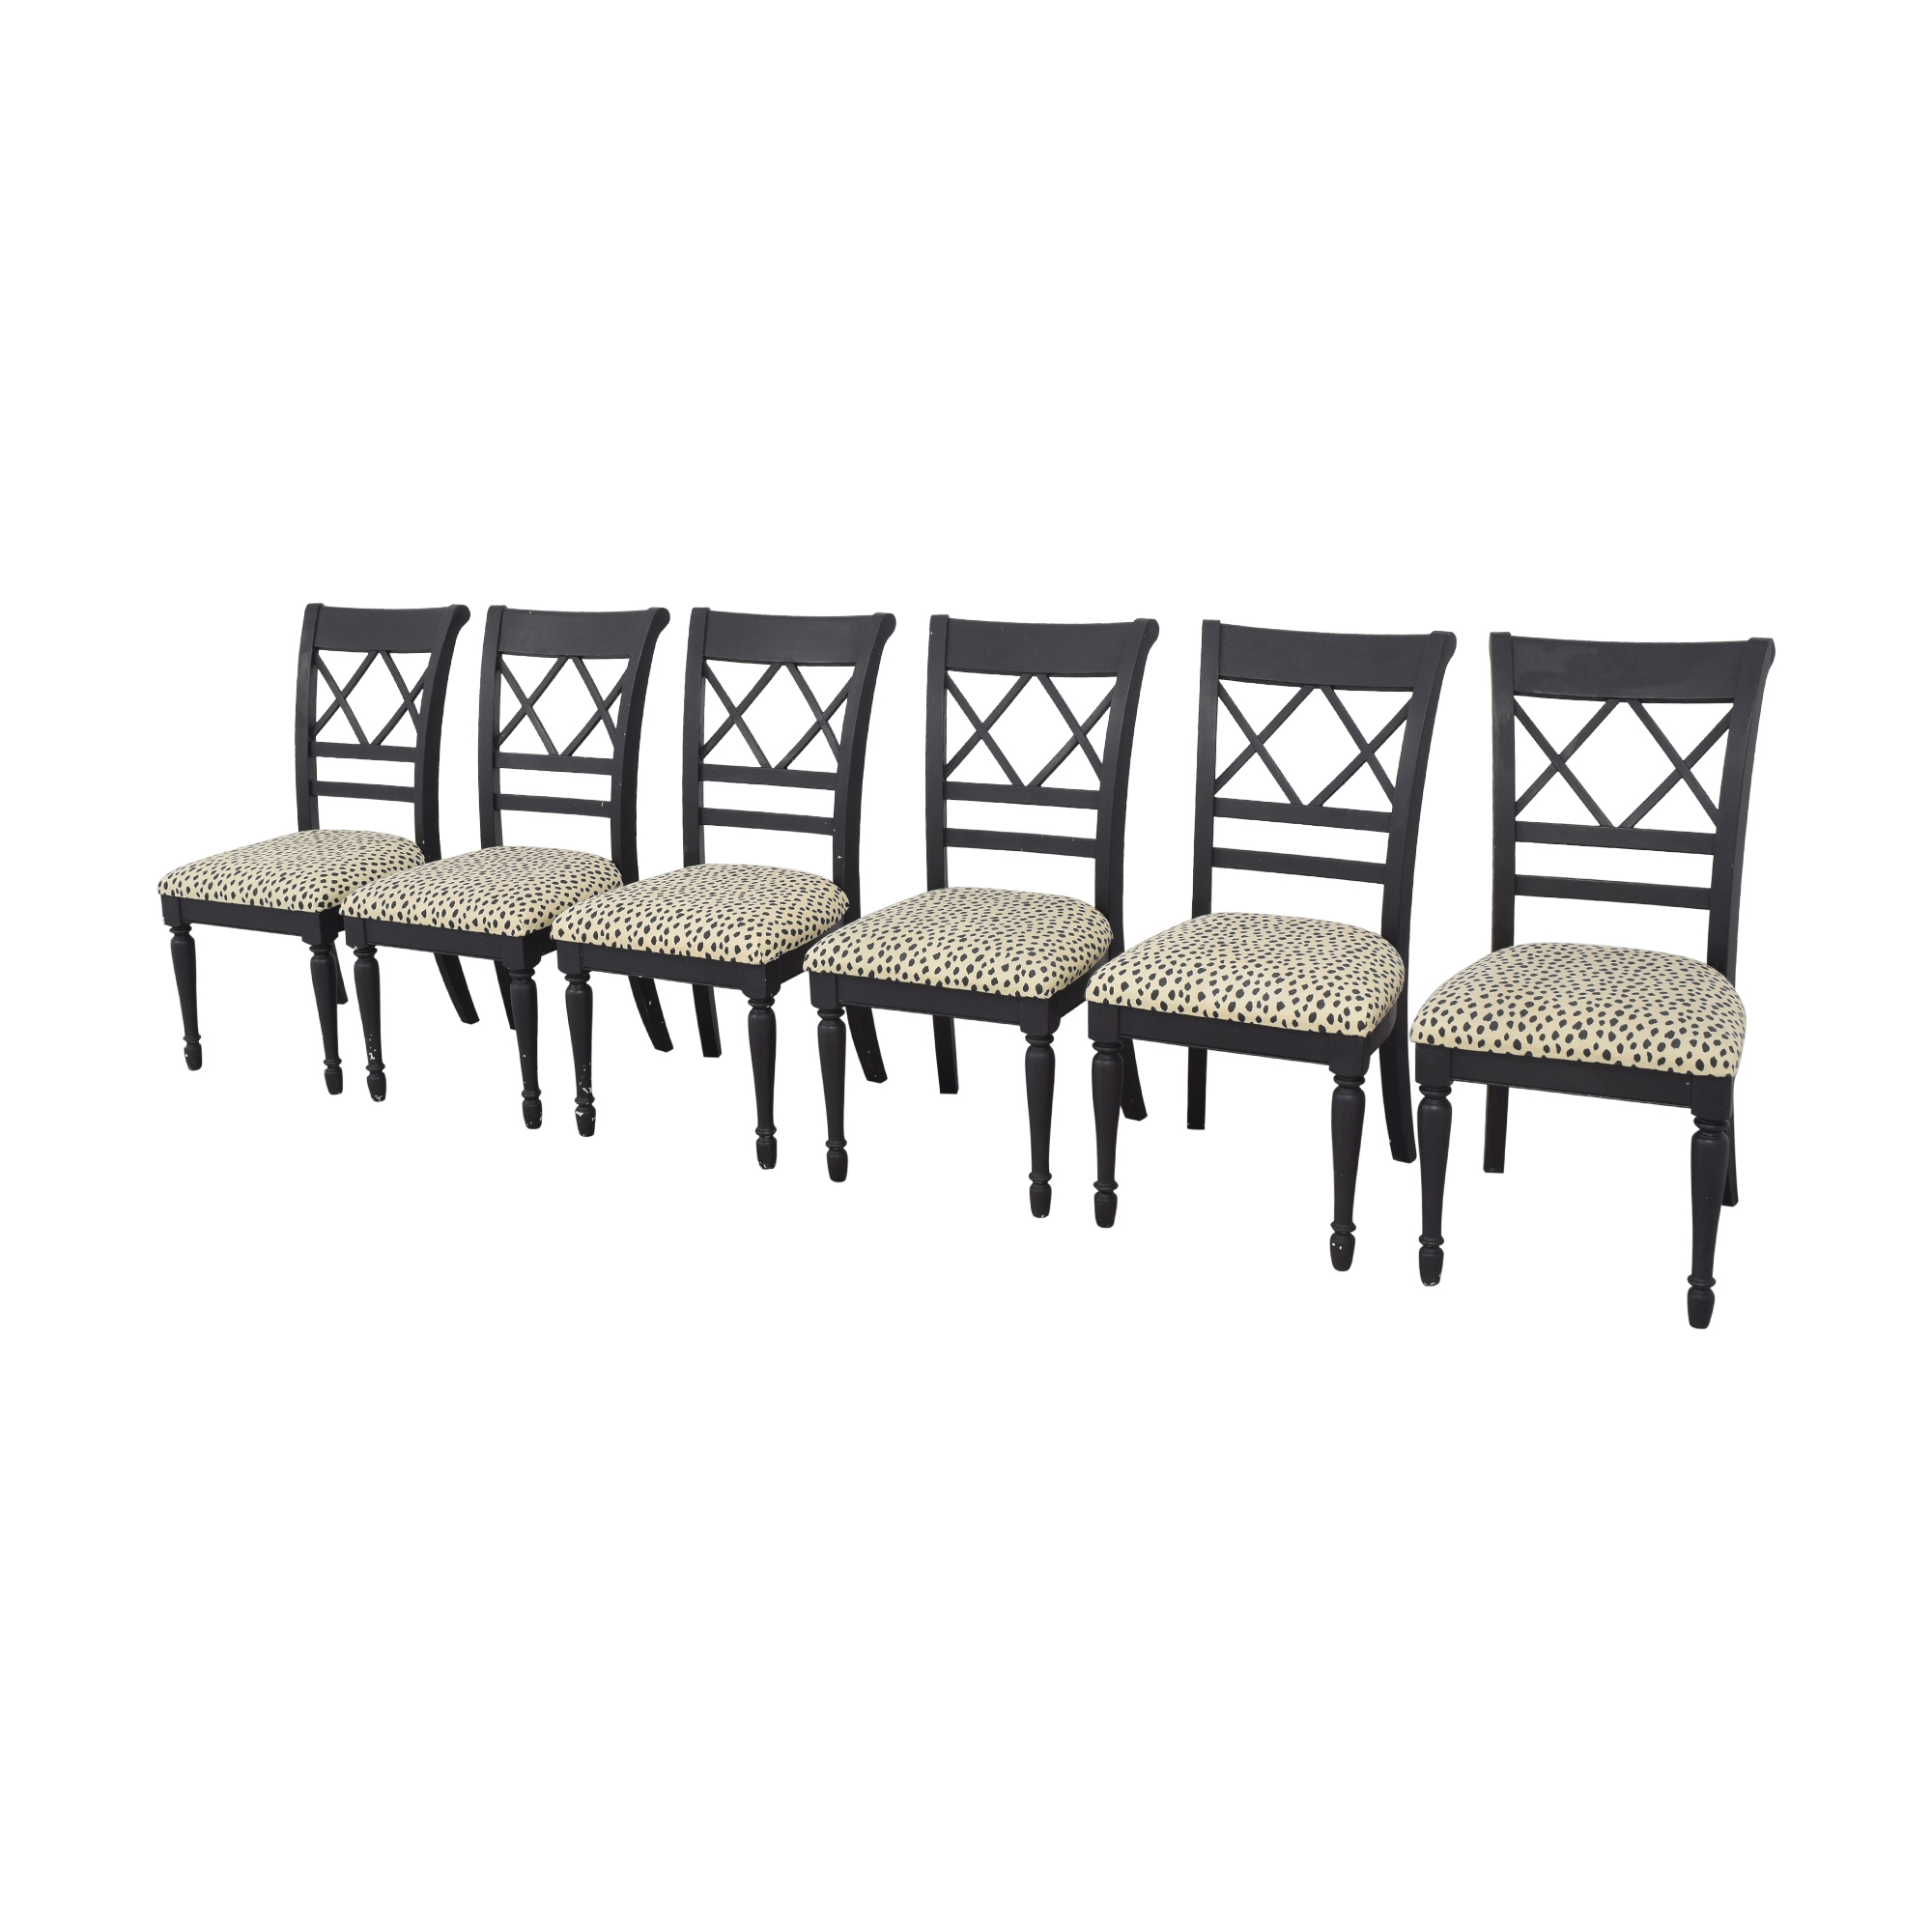 shop Cresent Furniture Cresent Fine Furniture Dining Chairs online